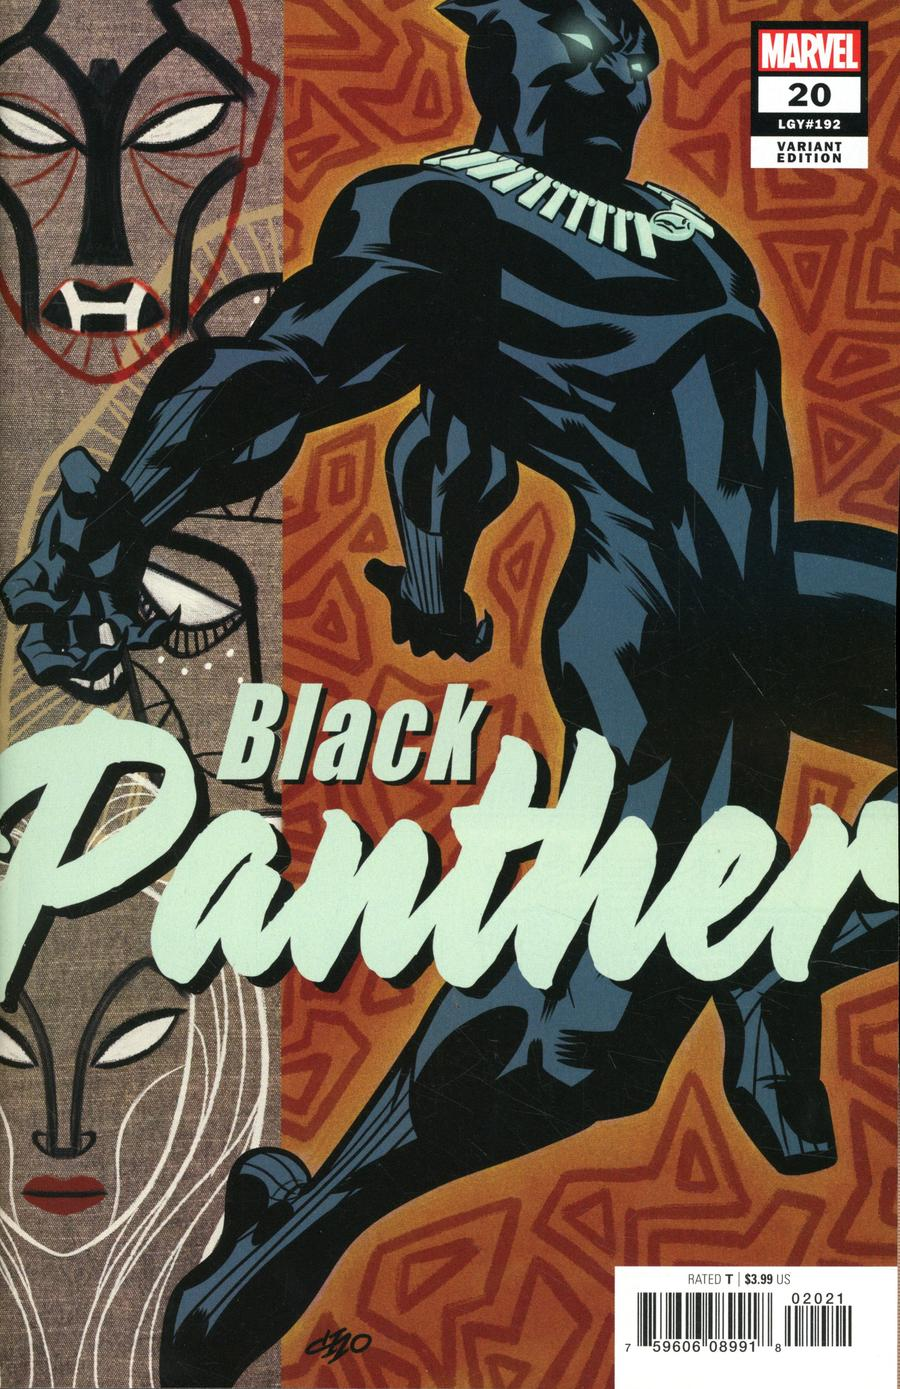 Black Panther Vol 7 #20 Cover B Variant Michael Cho Cover